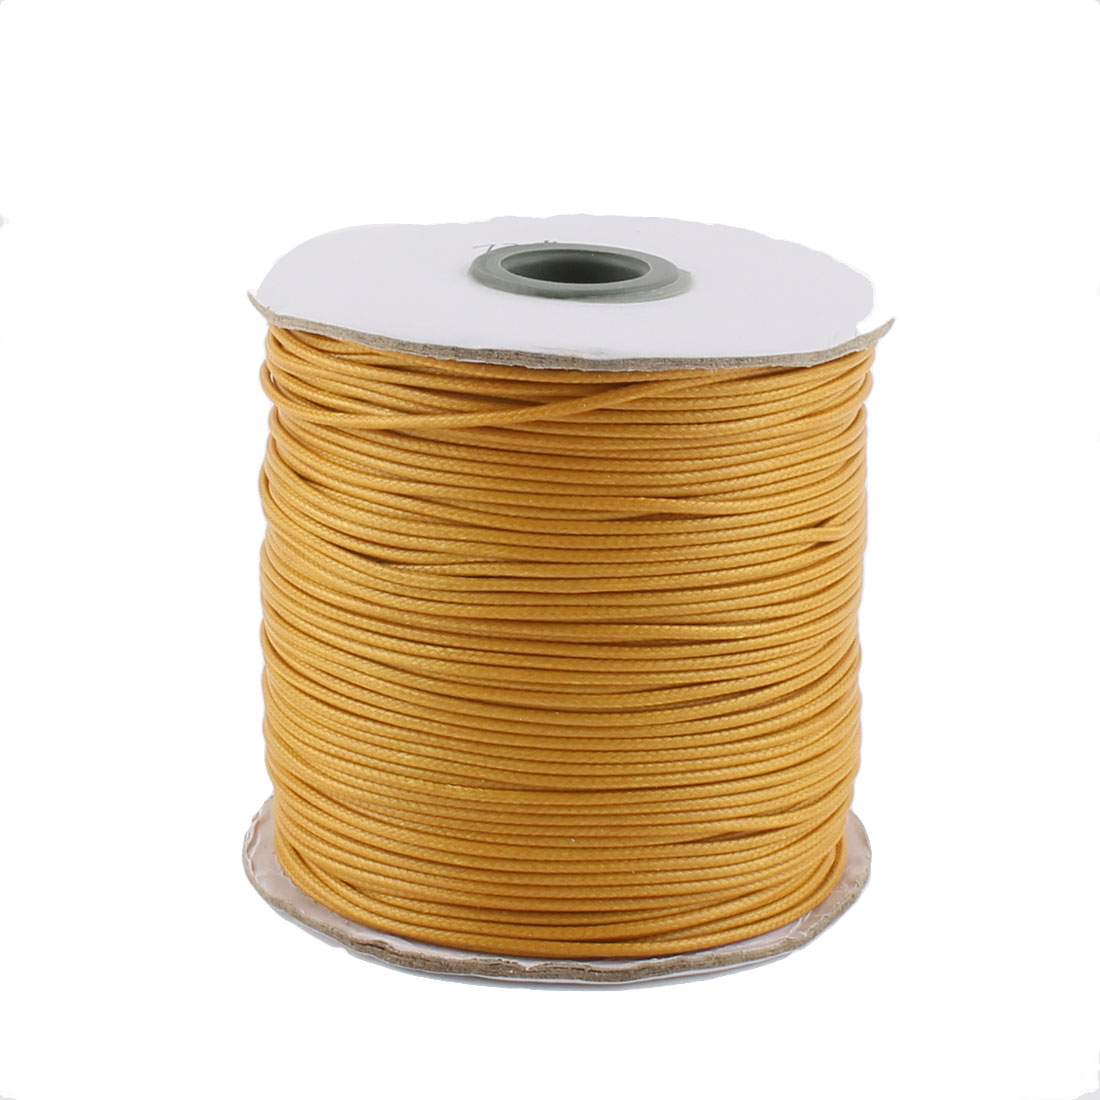 Cotton Waxed Making String Beading Thread Cord Roll Orange 190 Yard for Beads Jewelry